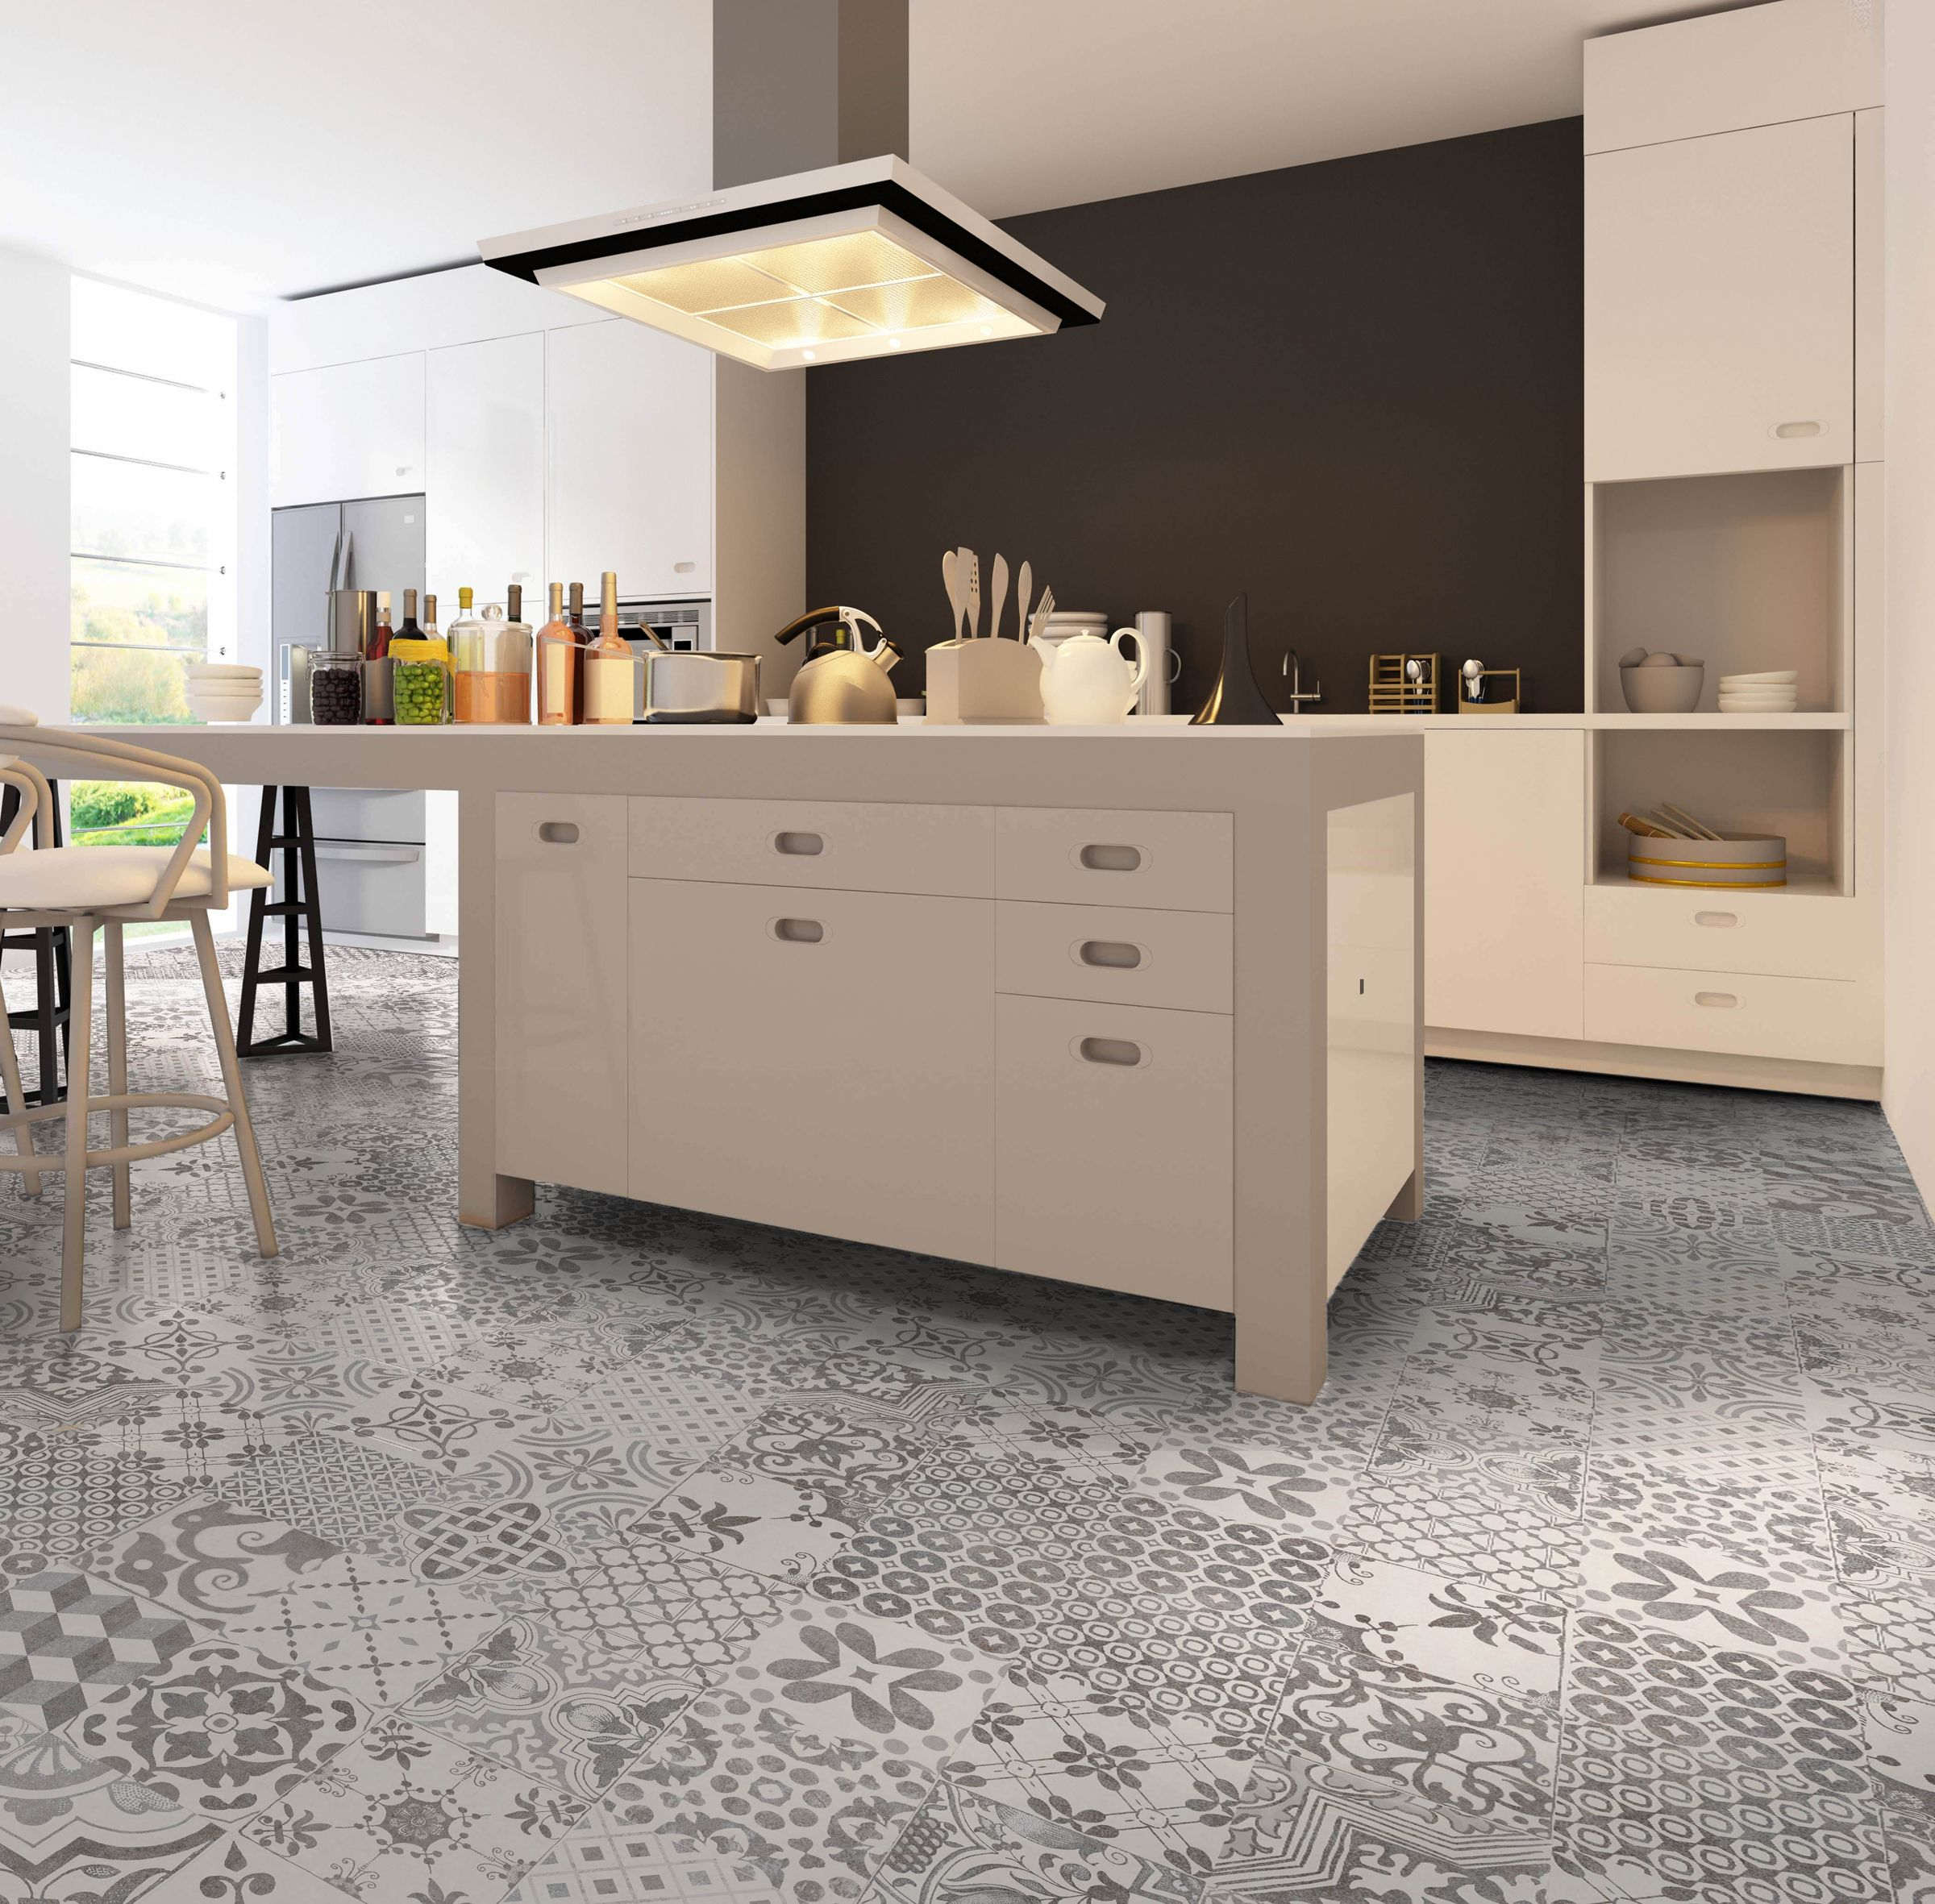 Bristol Is An Encaustic Look Vintage Wall And Floor Tile With A Random Pattern This Type Of Tile I Patchwork Tiles Kitchen Kitchen Flooring Kitchen Floor Tile